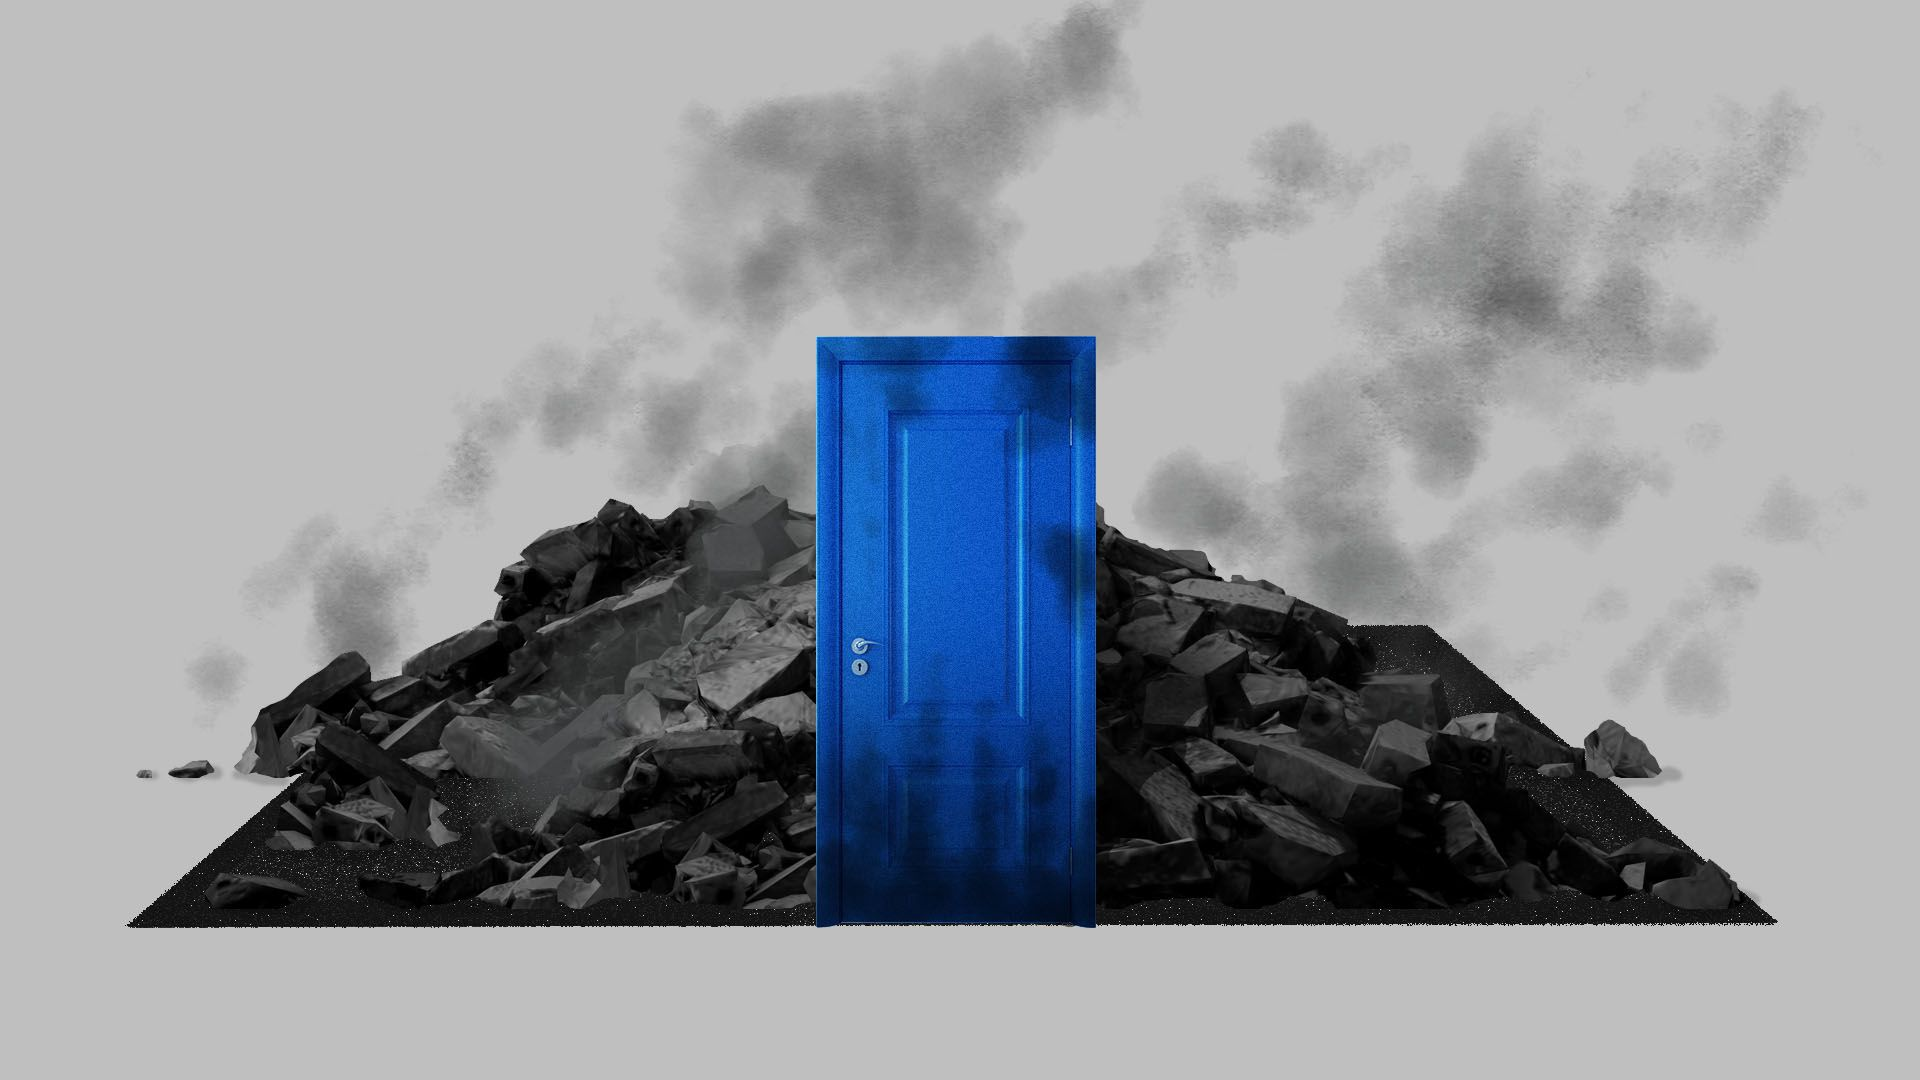 Illustration of a blue door with a burned down room behind it